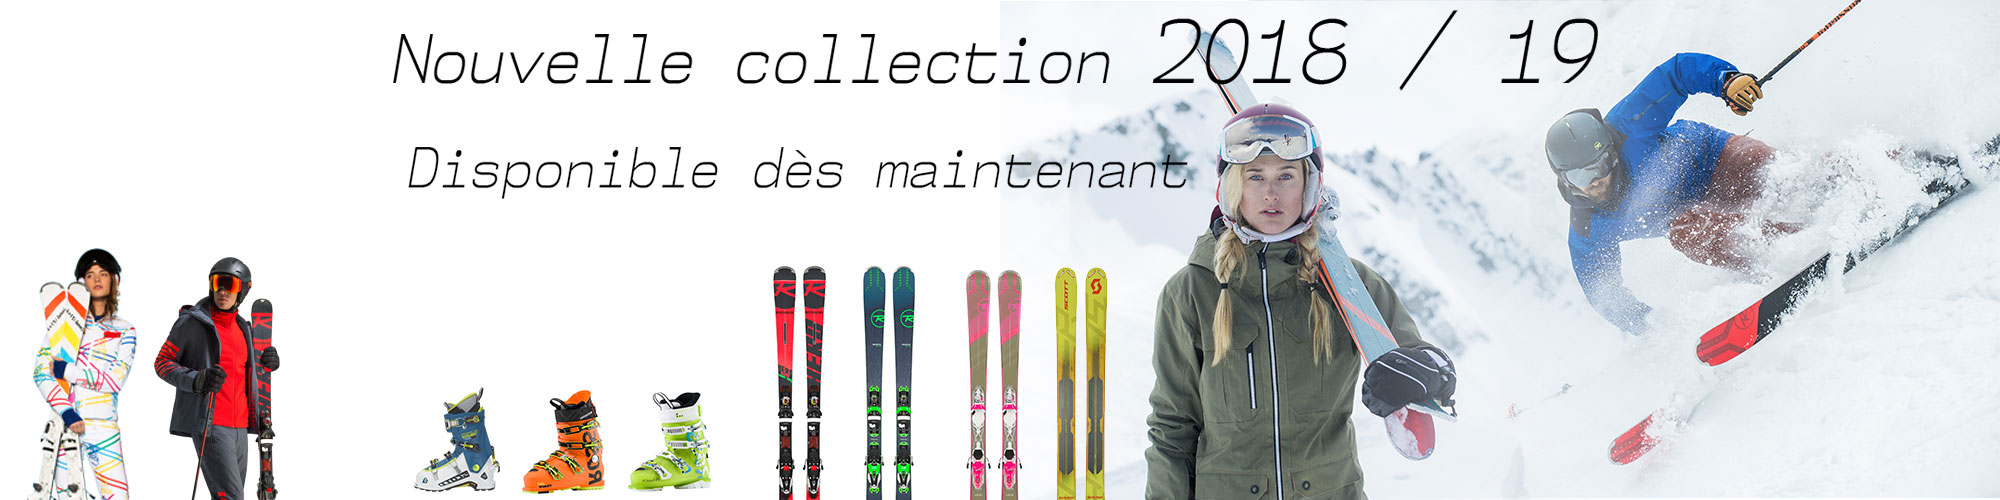 nouvelle-collection-2018-2019-pc